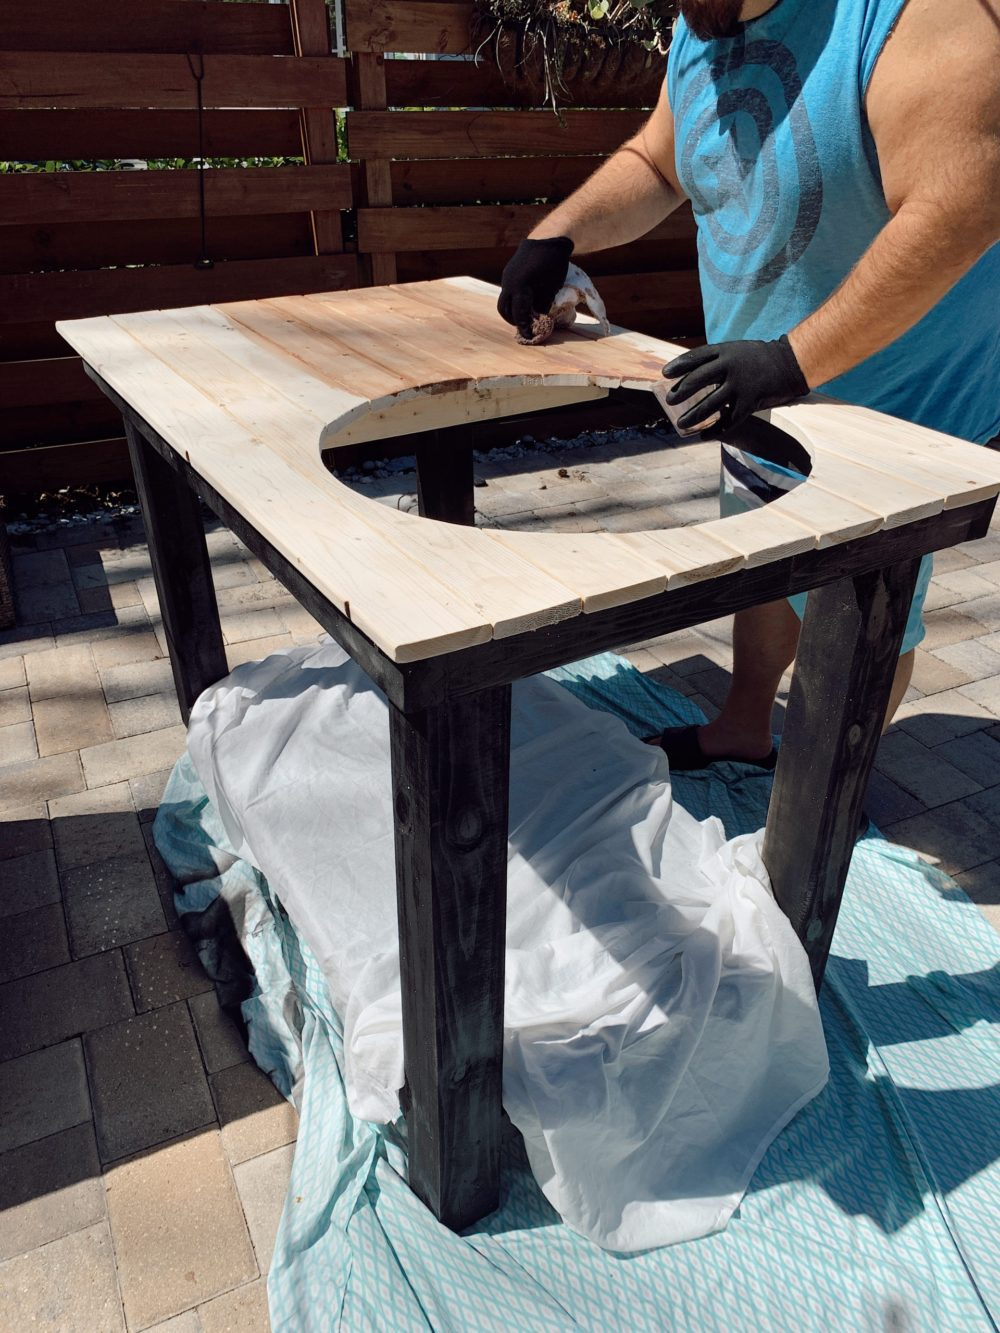 Outdoor Grill Table DIY and Plans for How To Build a Mobile Grill Cart | DIY BBQ Table by popular Florida lifestyle blog, Fresh Mommy Blog: image of a man making a DIY BBQ table.